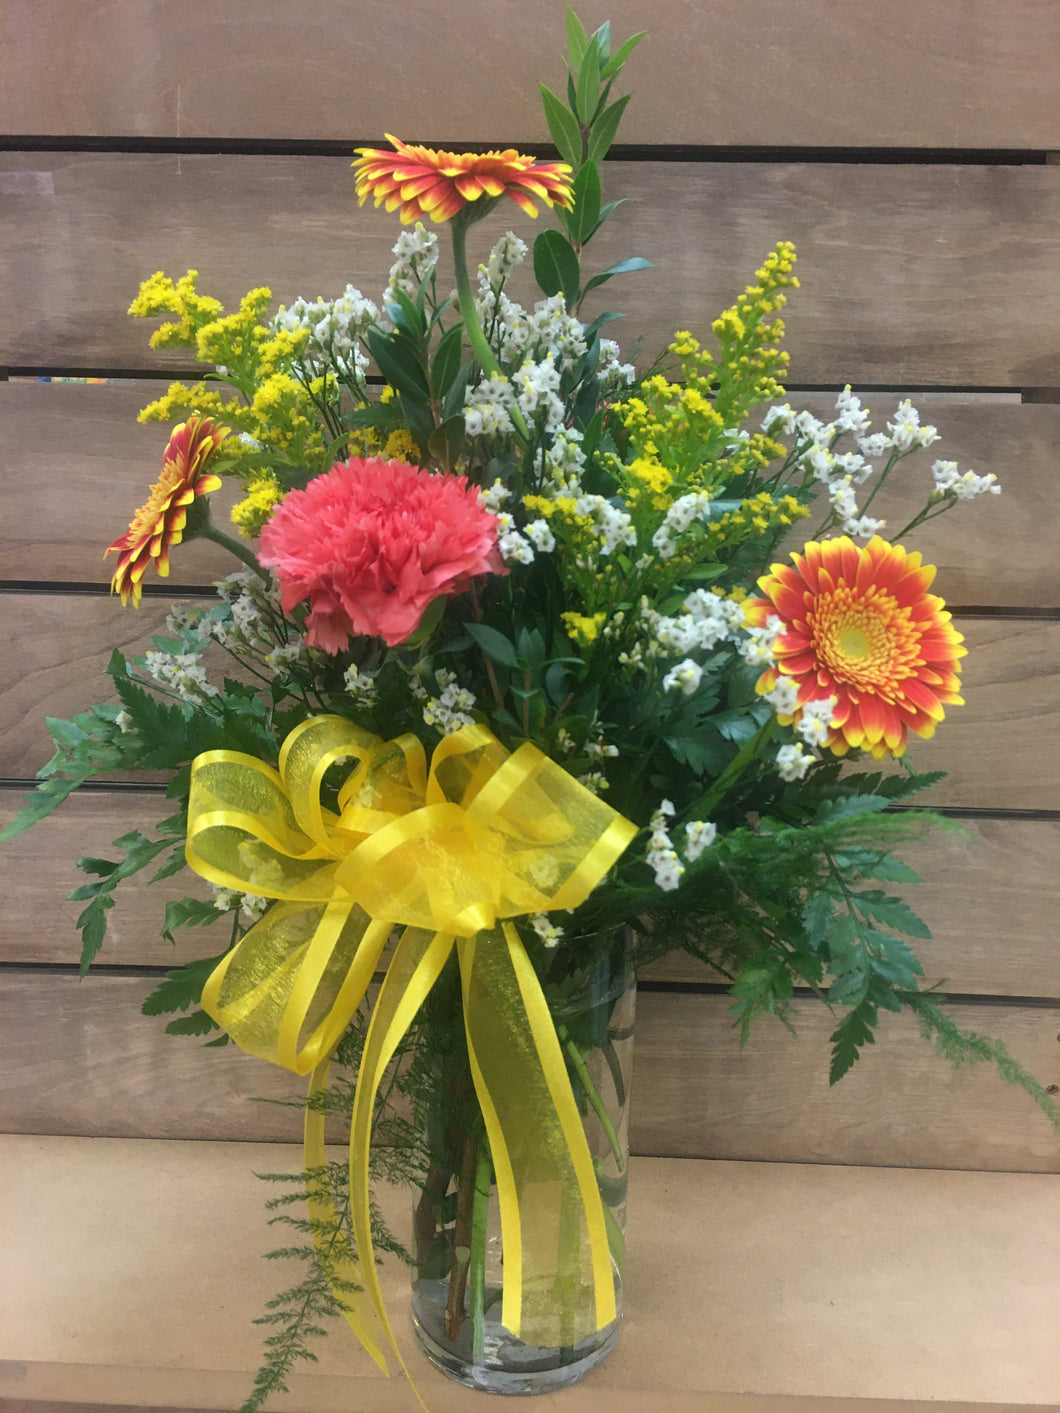 FLOWERS - Gerbera Daisies and Carnations in Vase